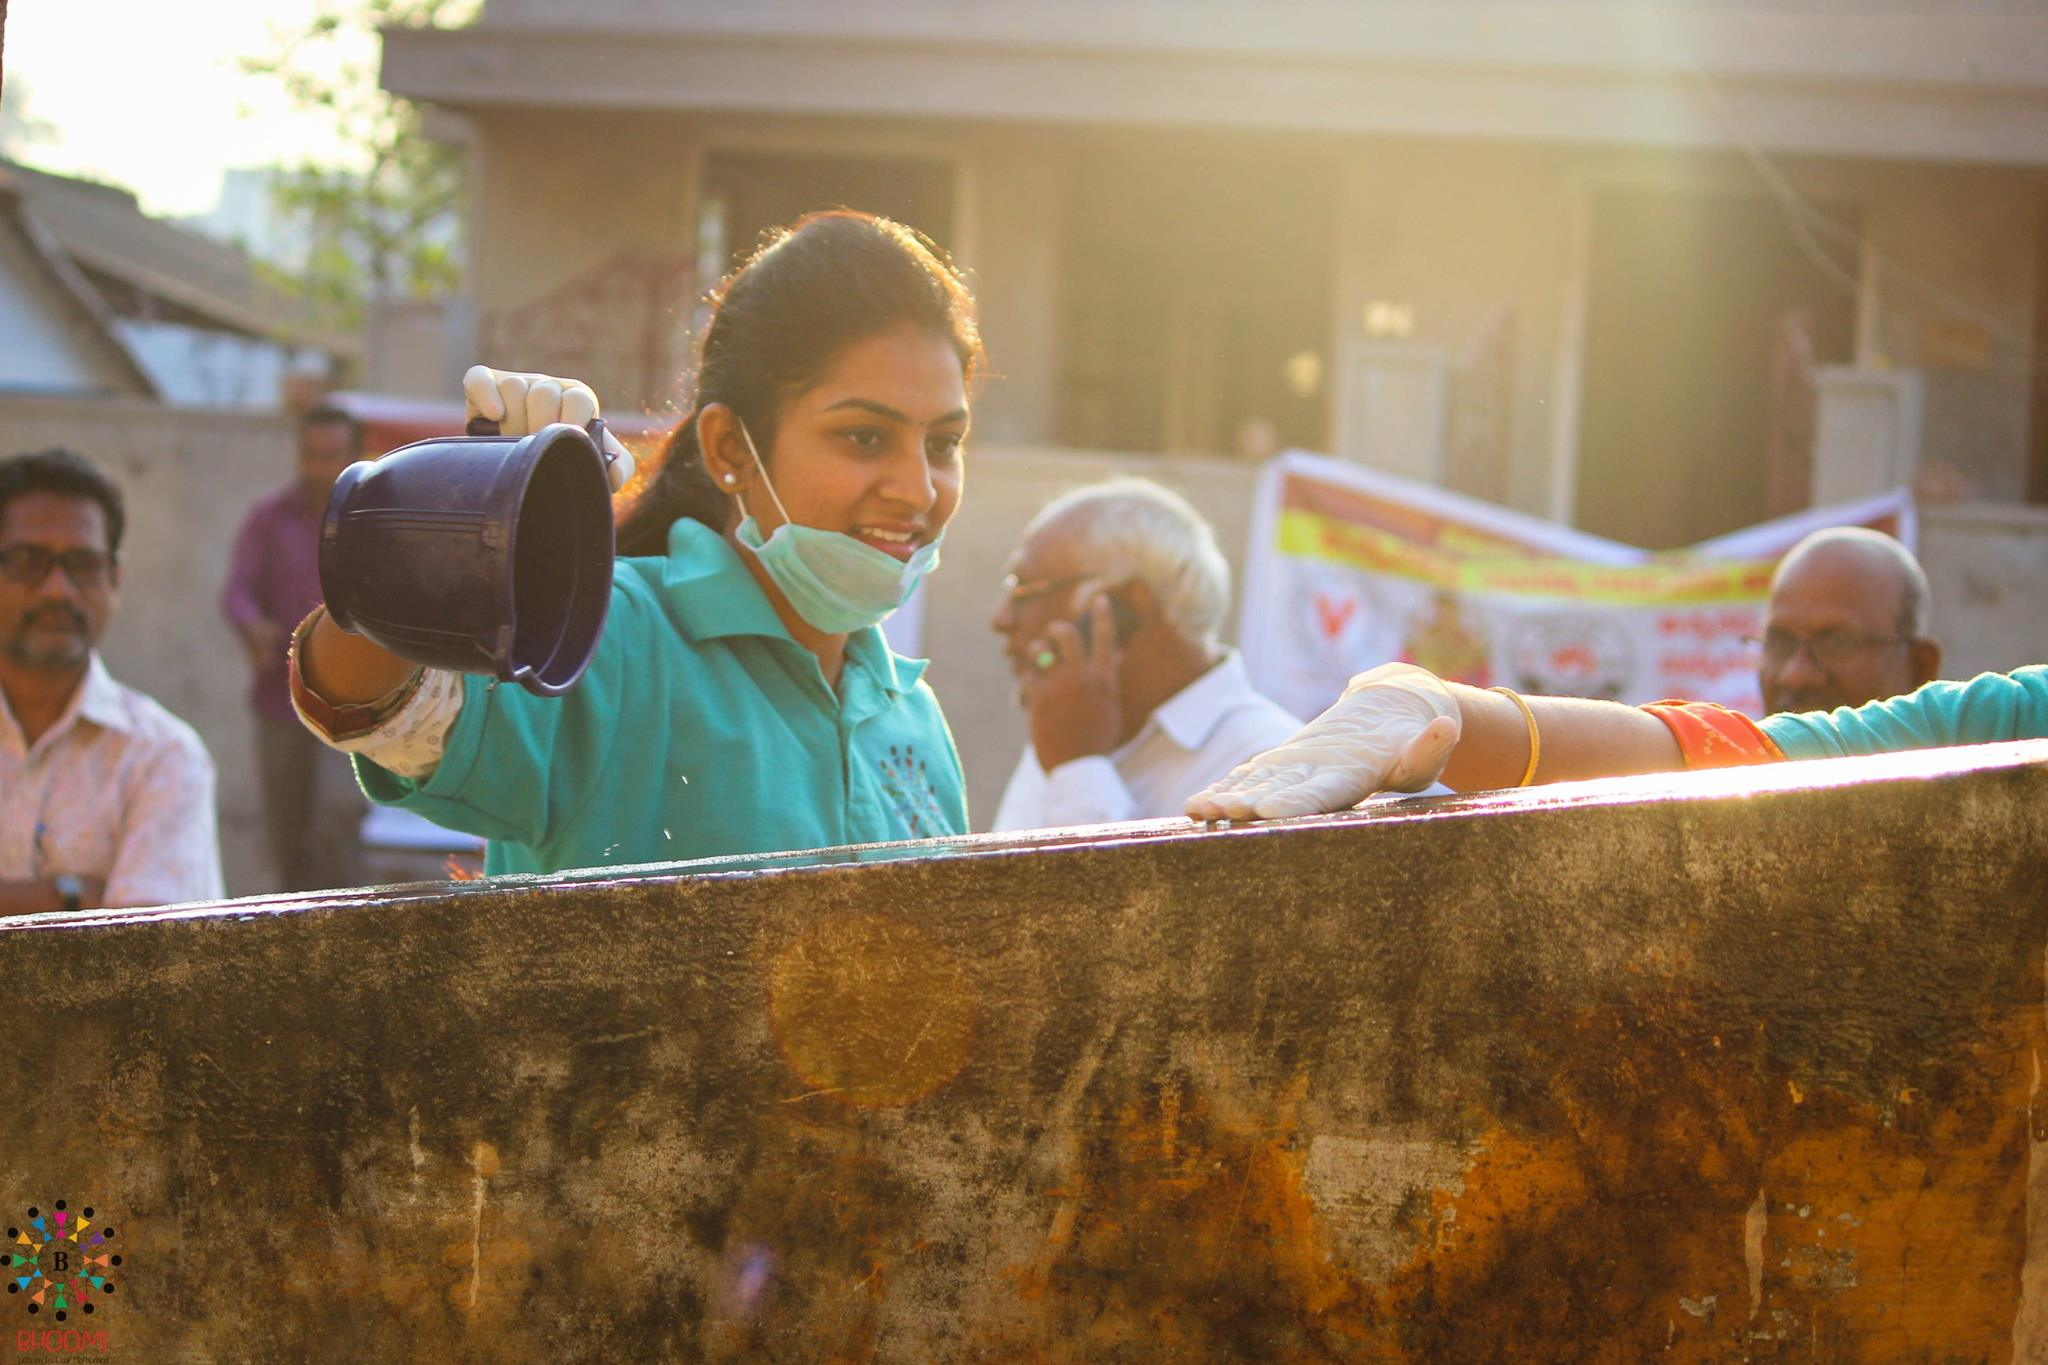 She Travels 300 KM Every Weekend To Her Hometown To Make It Clean And Garbage-Free